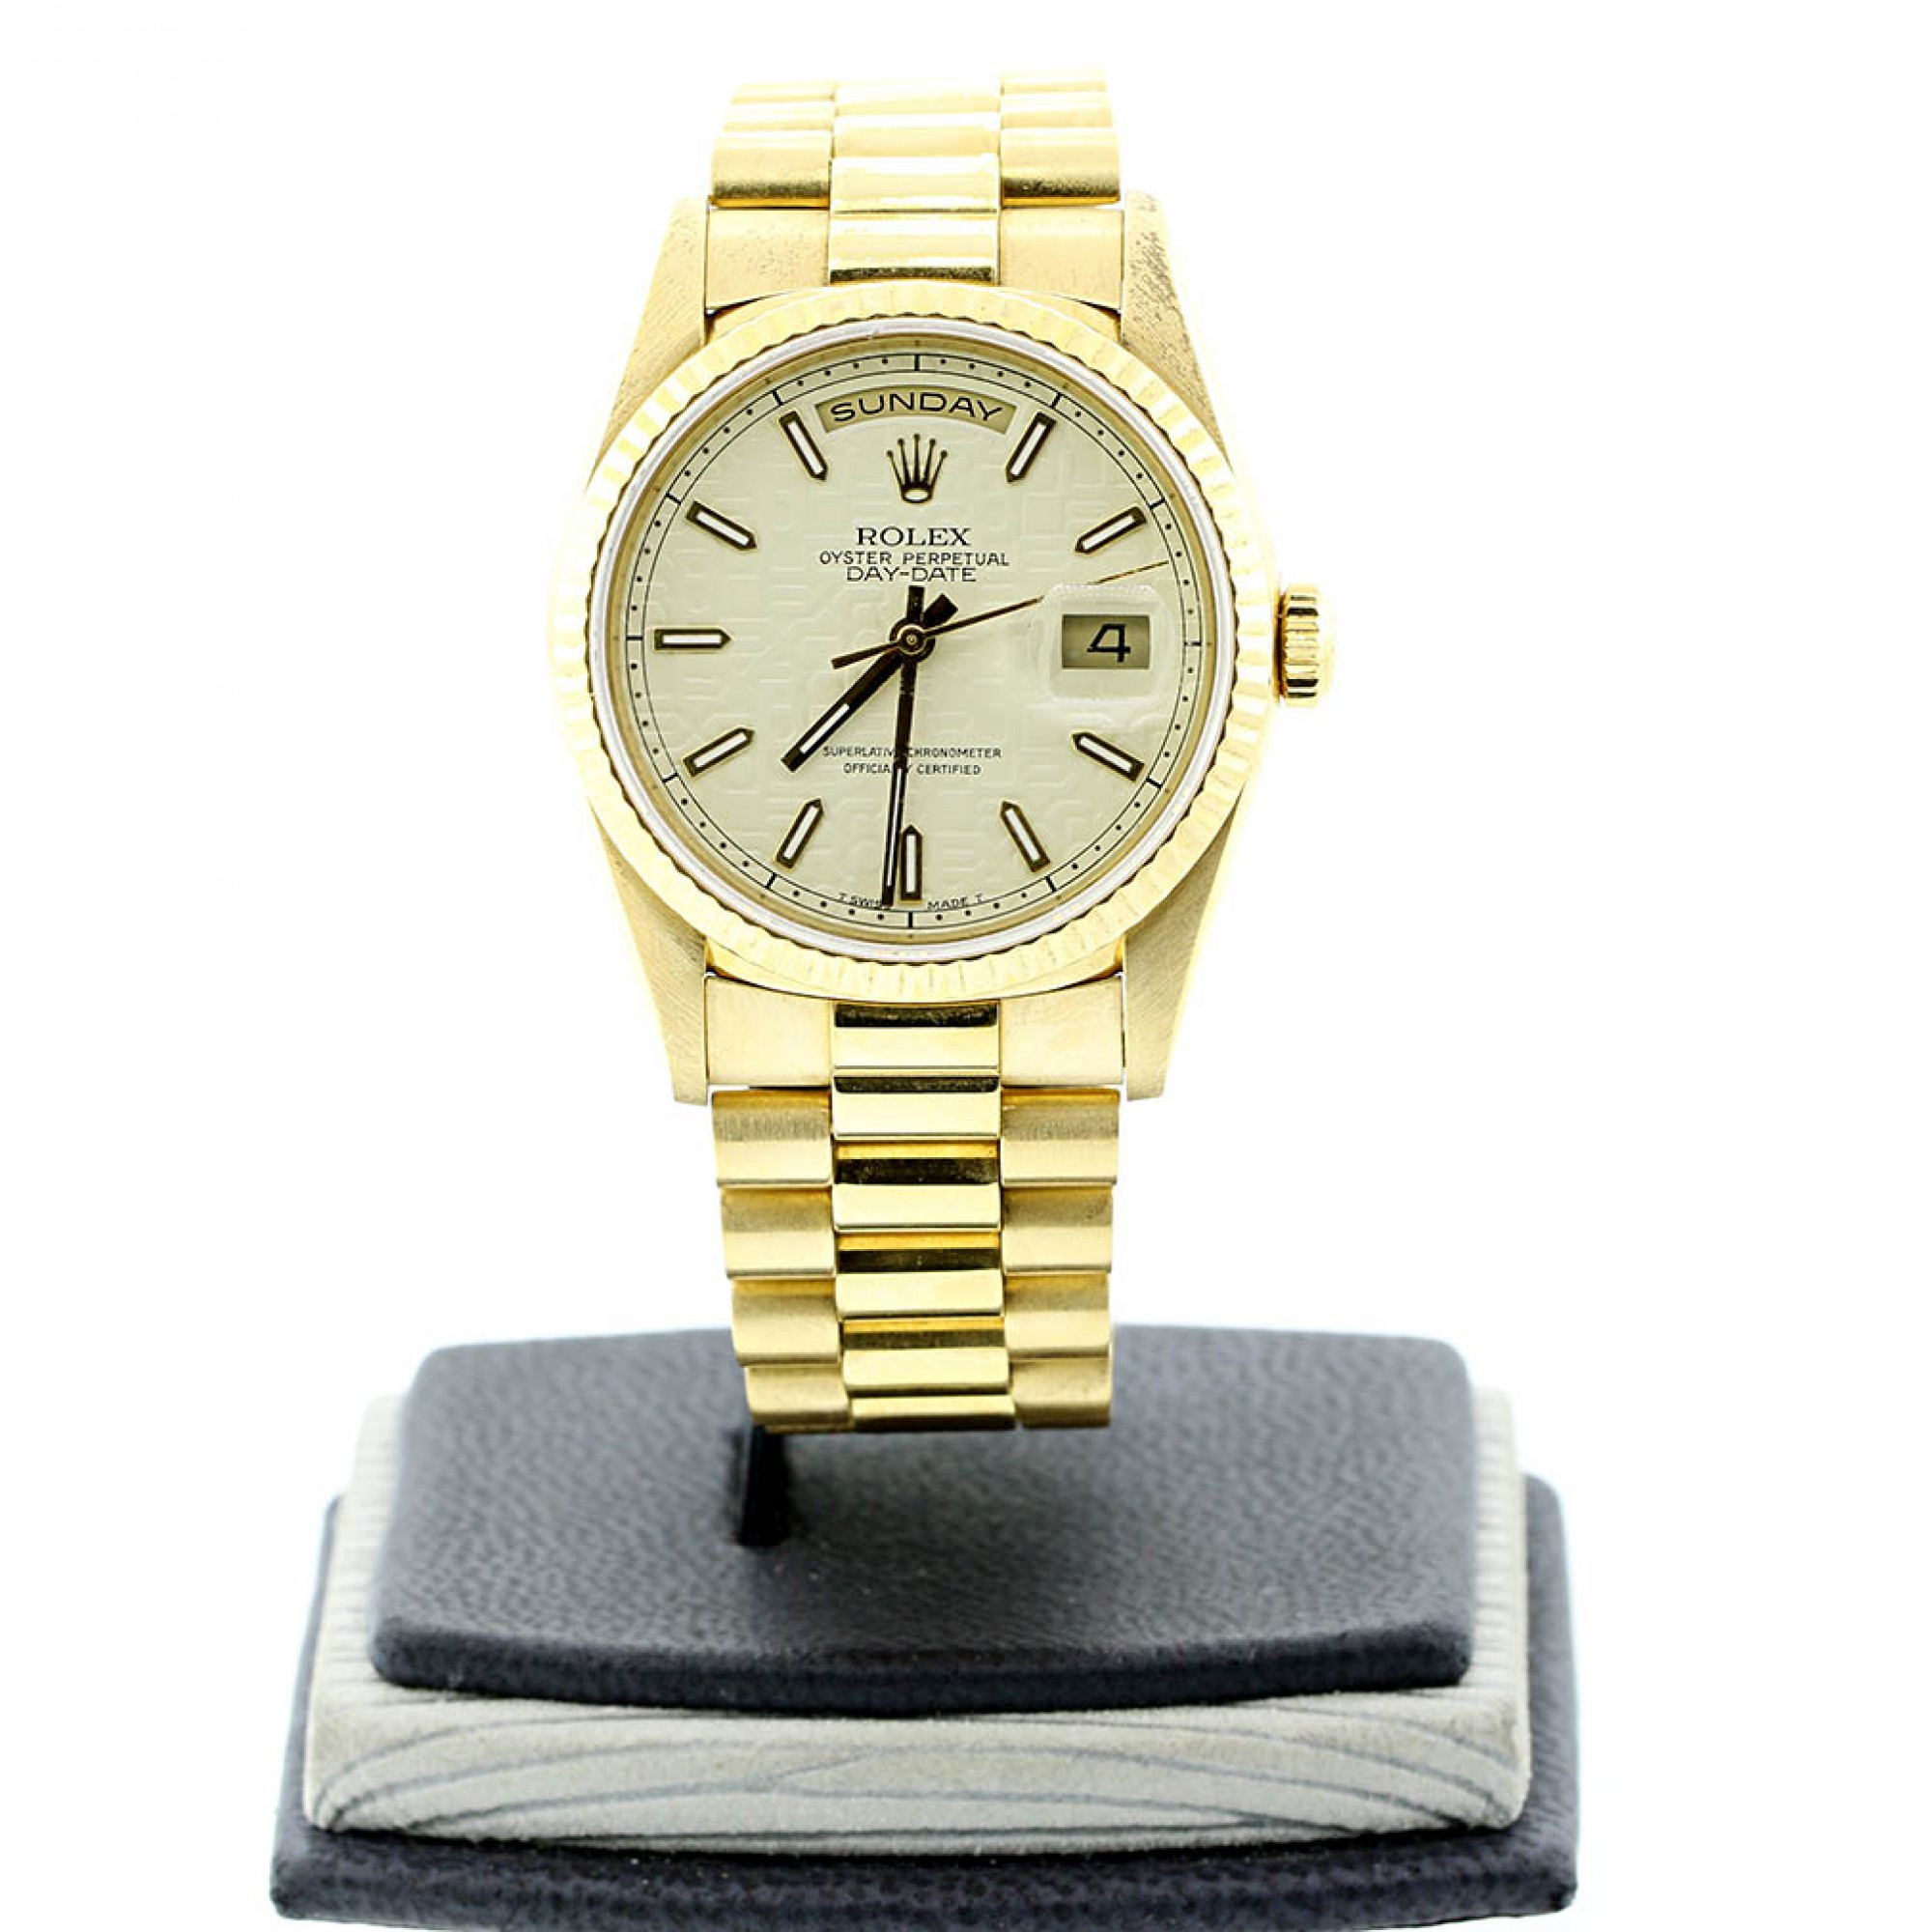 141e8ef5b51 Rolex Oyster Perpetual President Day-Date 18K Yellow Gold 36mm Automatic  watch